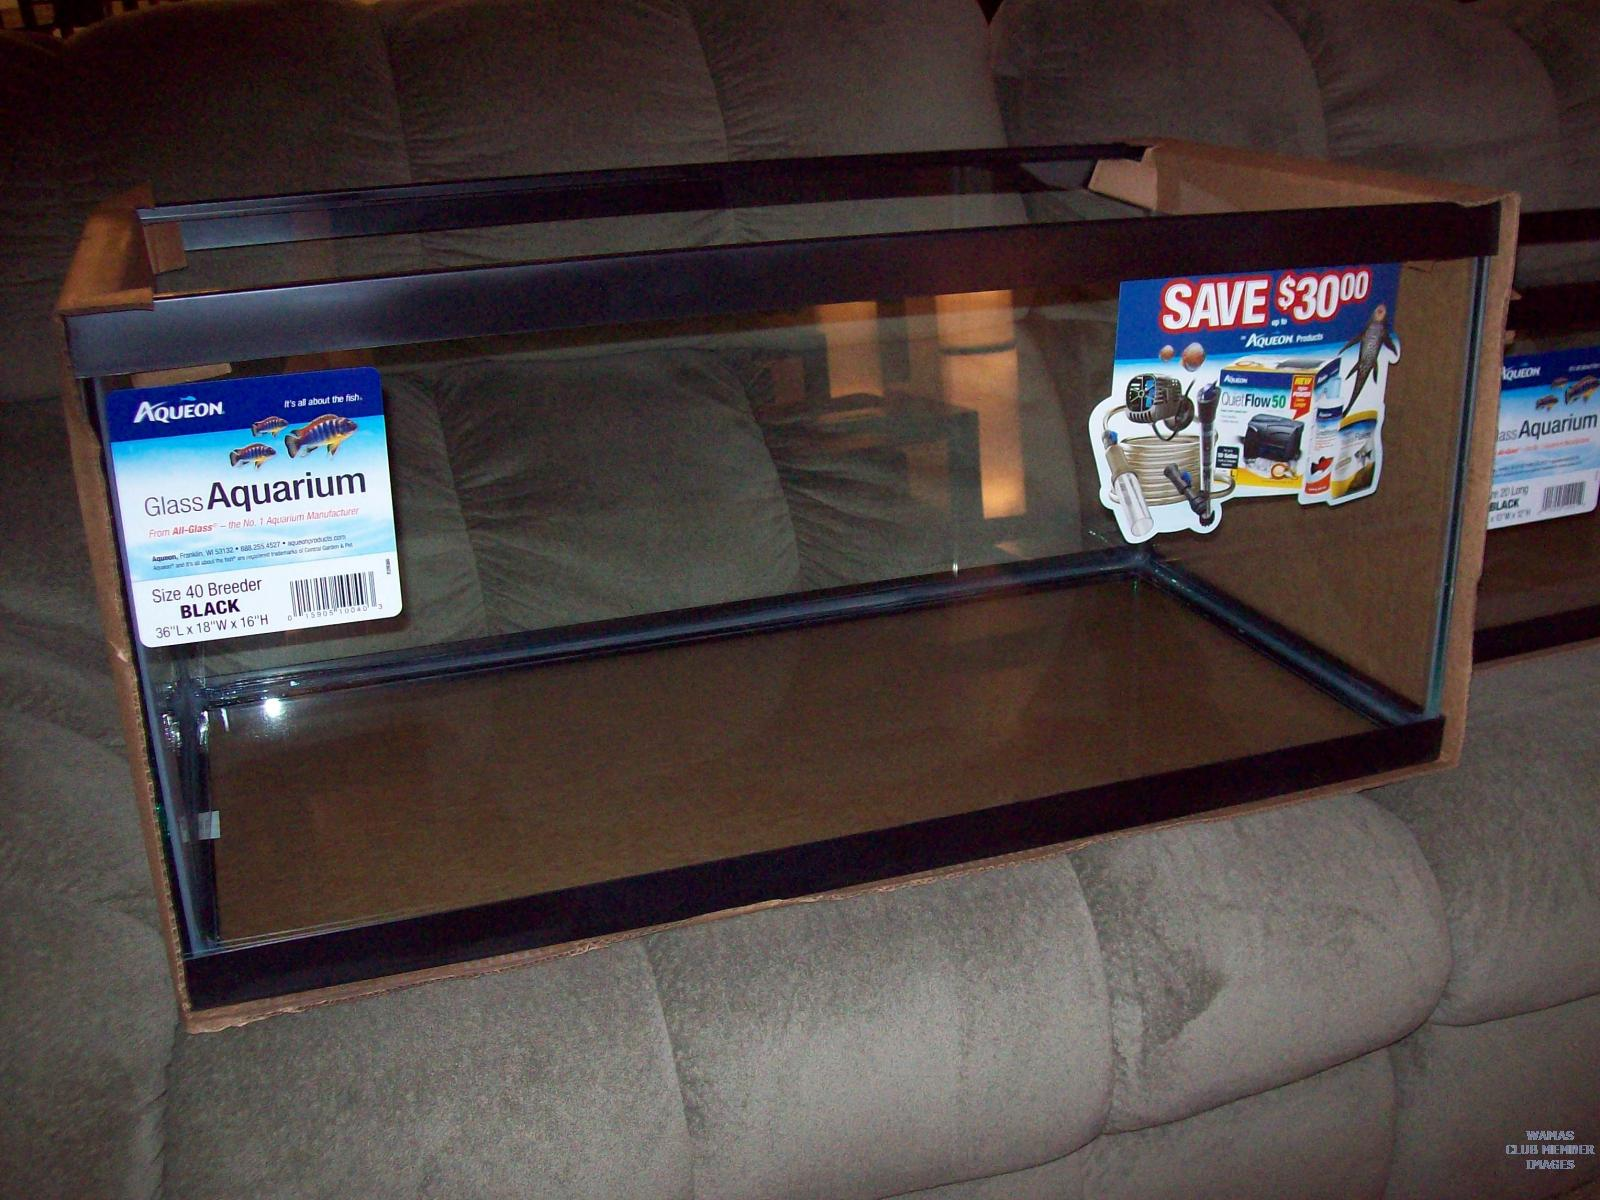 75 gallon aquarium stand petco petco 1 per gallon deal is for 75 gallon fish tank dimensions